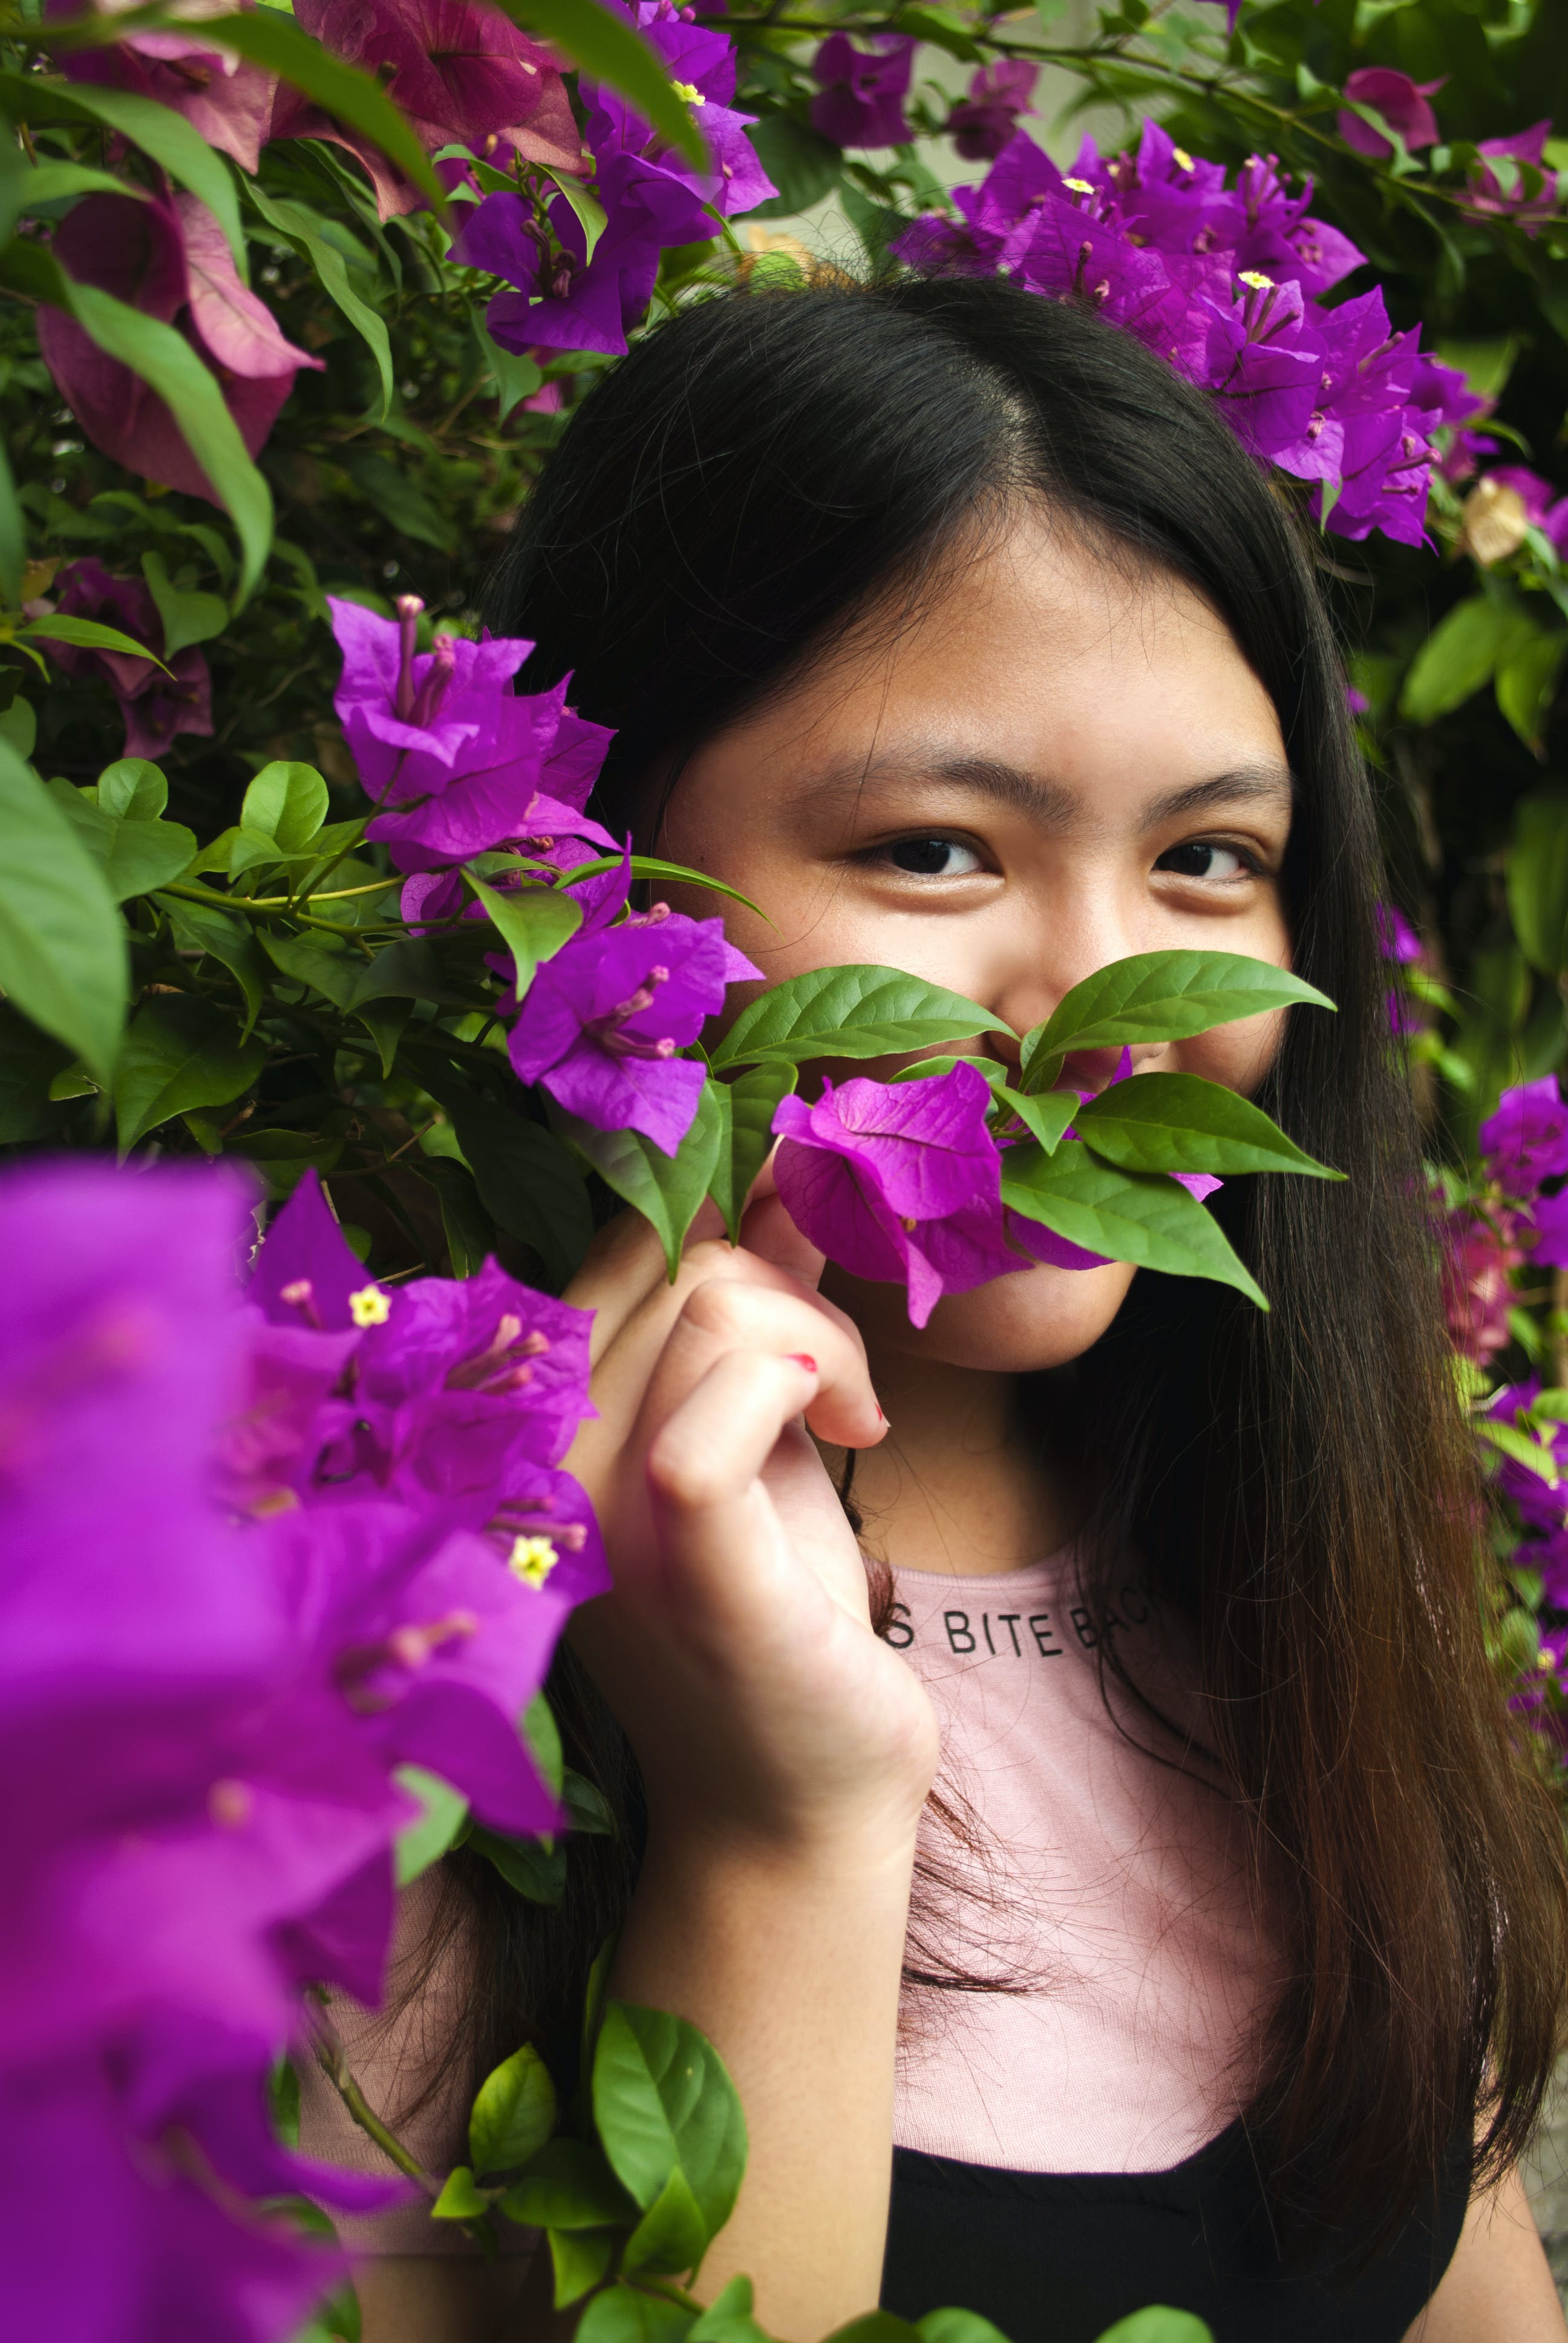 Woman Wearing Pink and Black Shirt Near Purple Petaled Flowers at Daytime